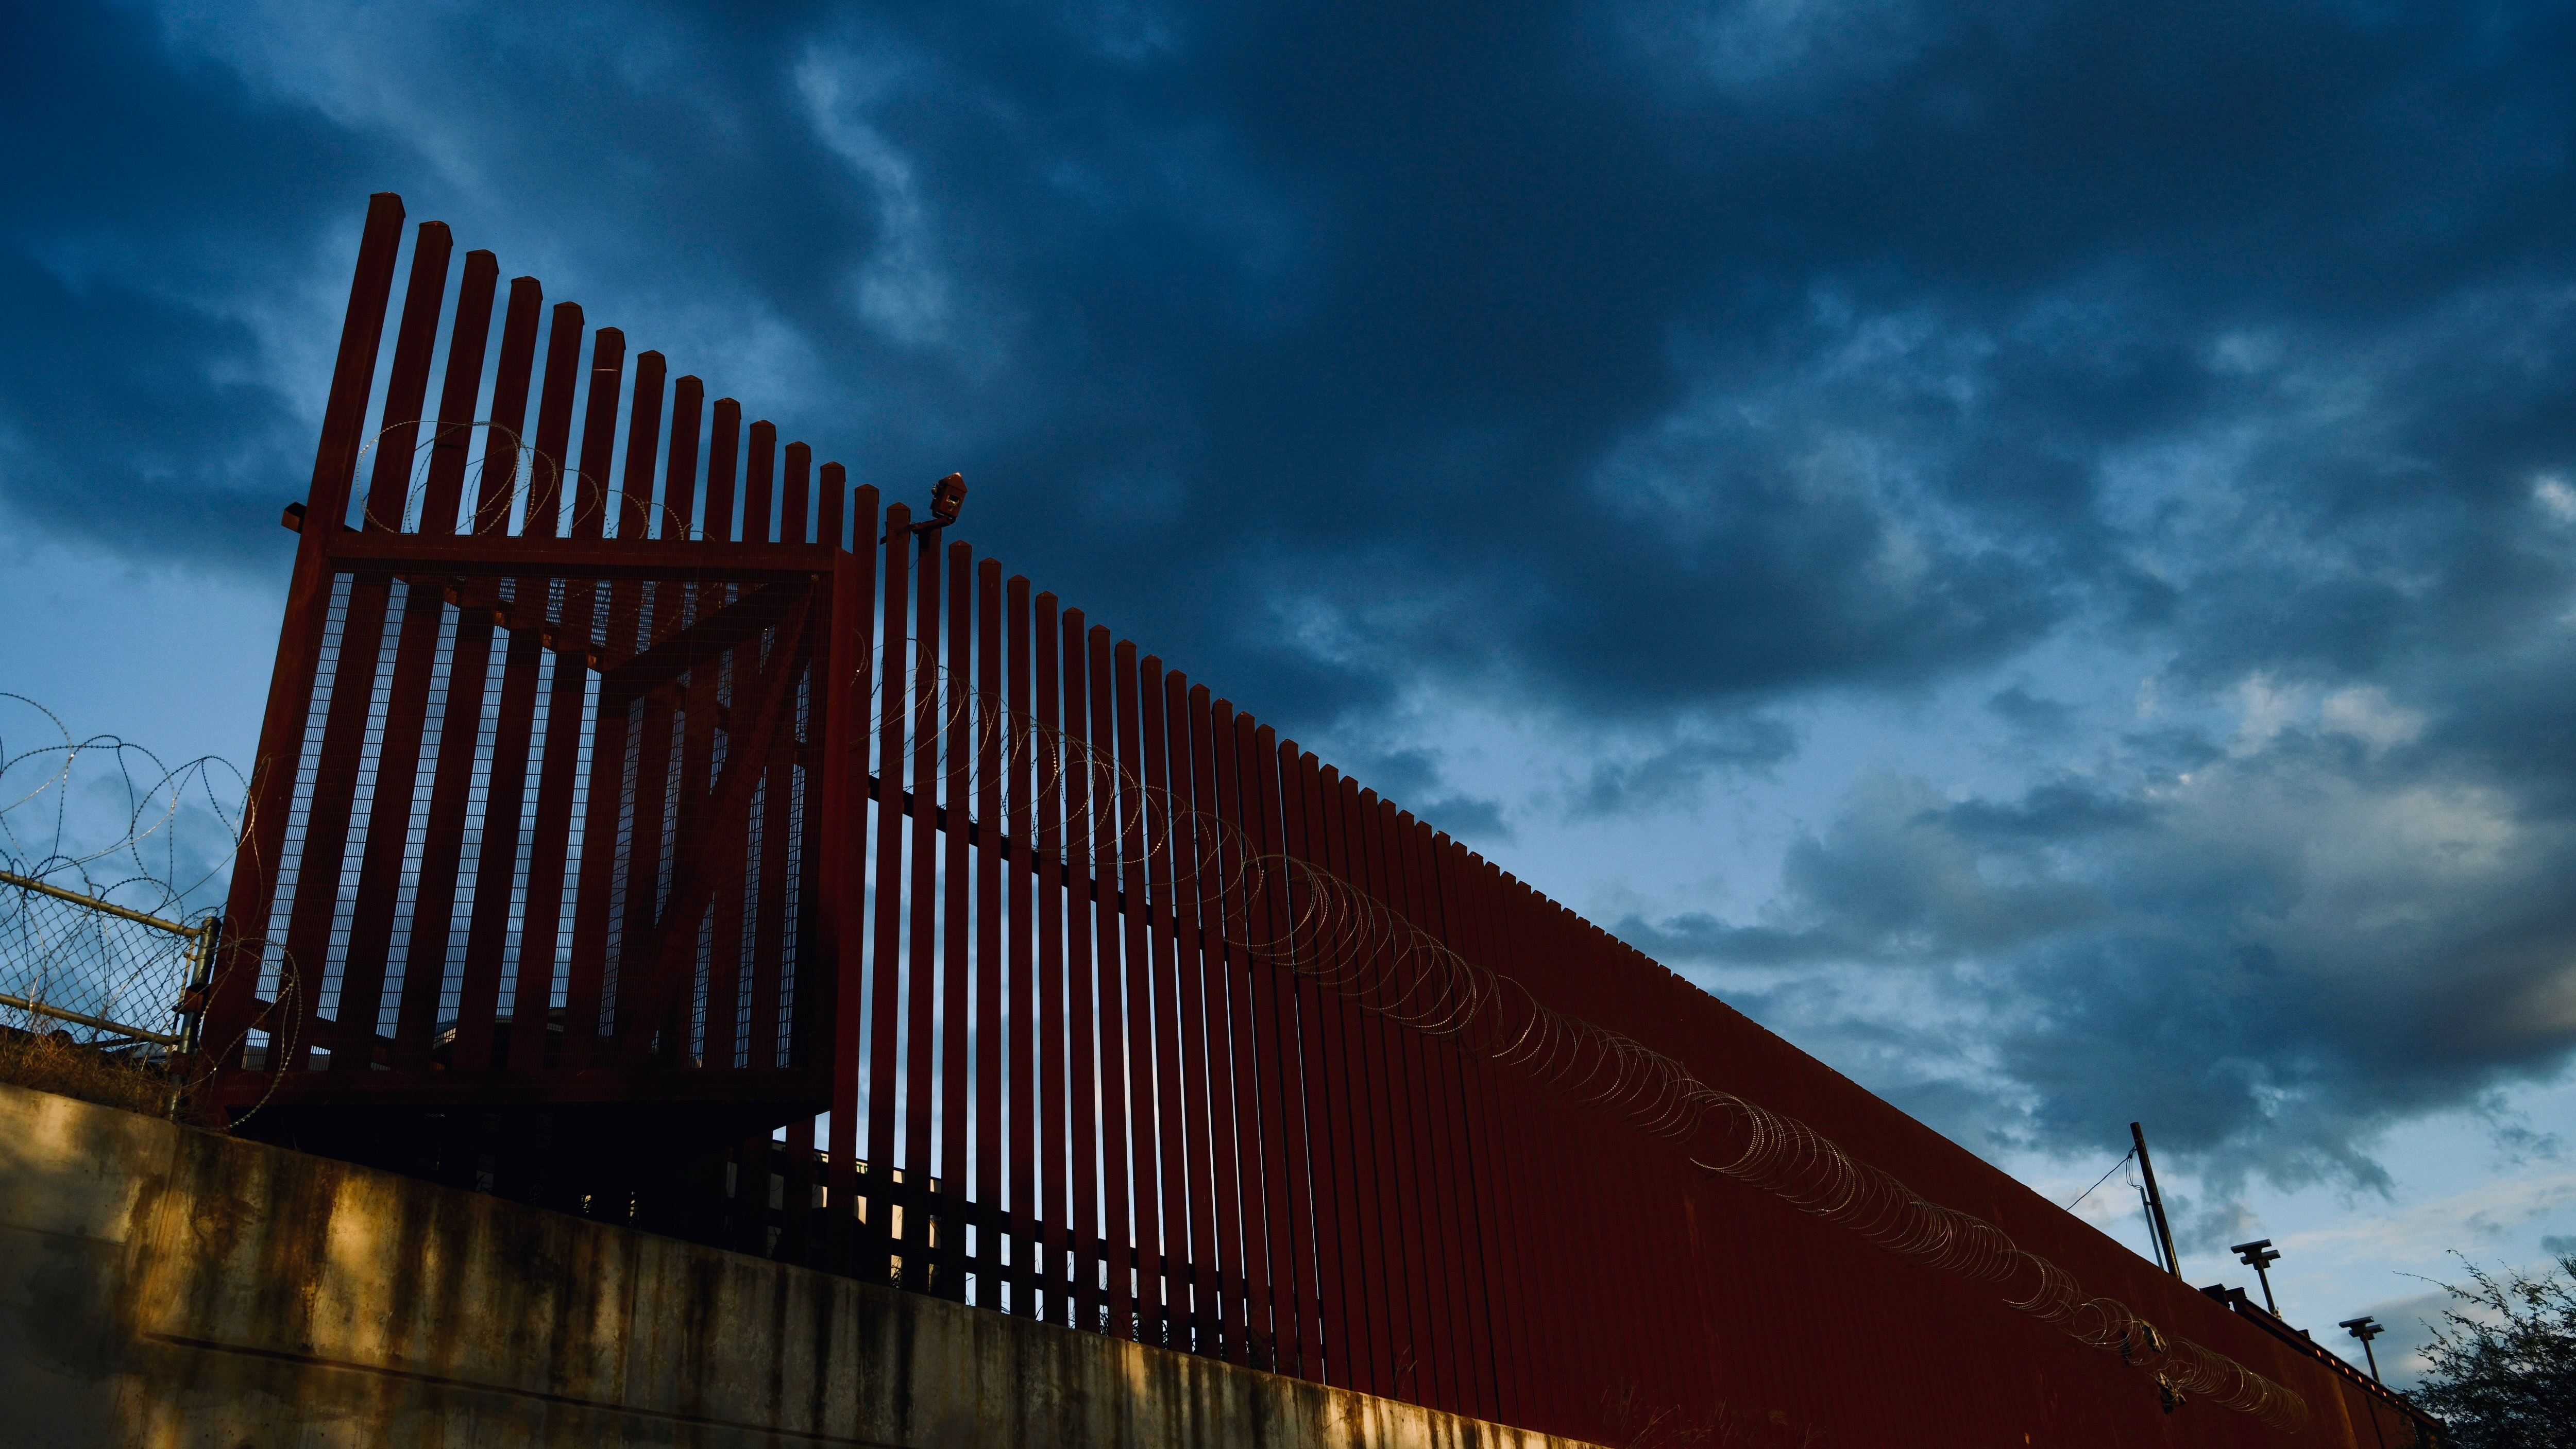 A portion of the US-Mexico border fence.